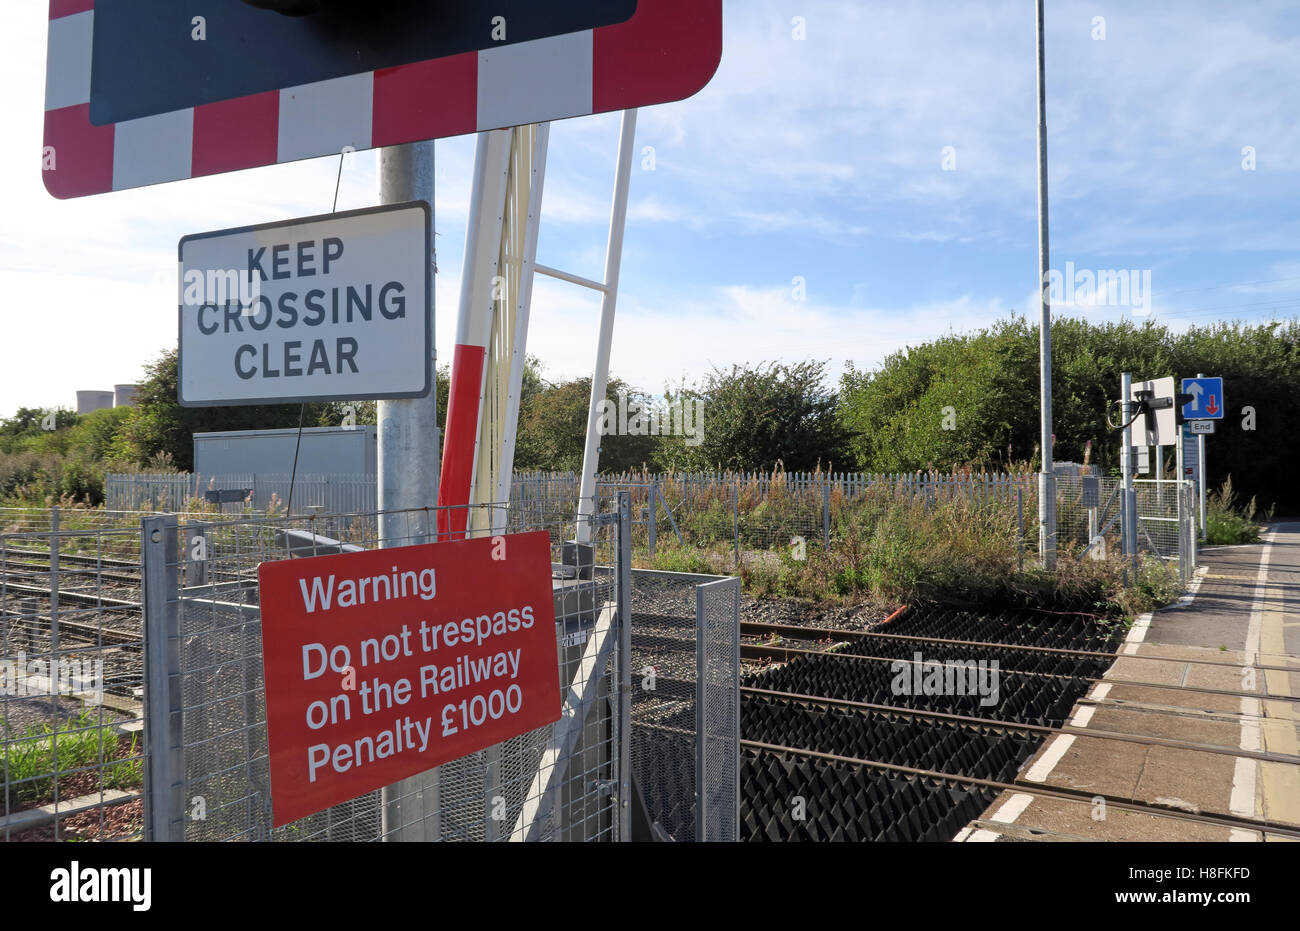 with,barriers,barrier,accident,fatal,danger,dangerous,fine,penalty,fines,penalties,rail,railway,track,side,trackside,Pway,permanent,way,sign,signs,keep,clear,open,raised,goods,Ferry,Tavern,trespass,Network,BR,Level crossing,Track side,Permanent Way,keep crossing clear,Ferry Tavern,GoTonySmith,@HotpixUK,Tony,Smith,UK,GB,Great,Britain,United,Kingdom,English,British,England,problem,with,problem with,issue with,Buy Pictures of,Buy Images Of,Images of,Stock Images,Tony Smith,United Kingdom,Great Britain,British Isles